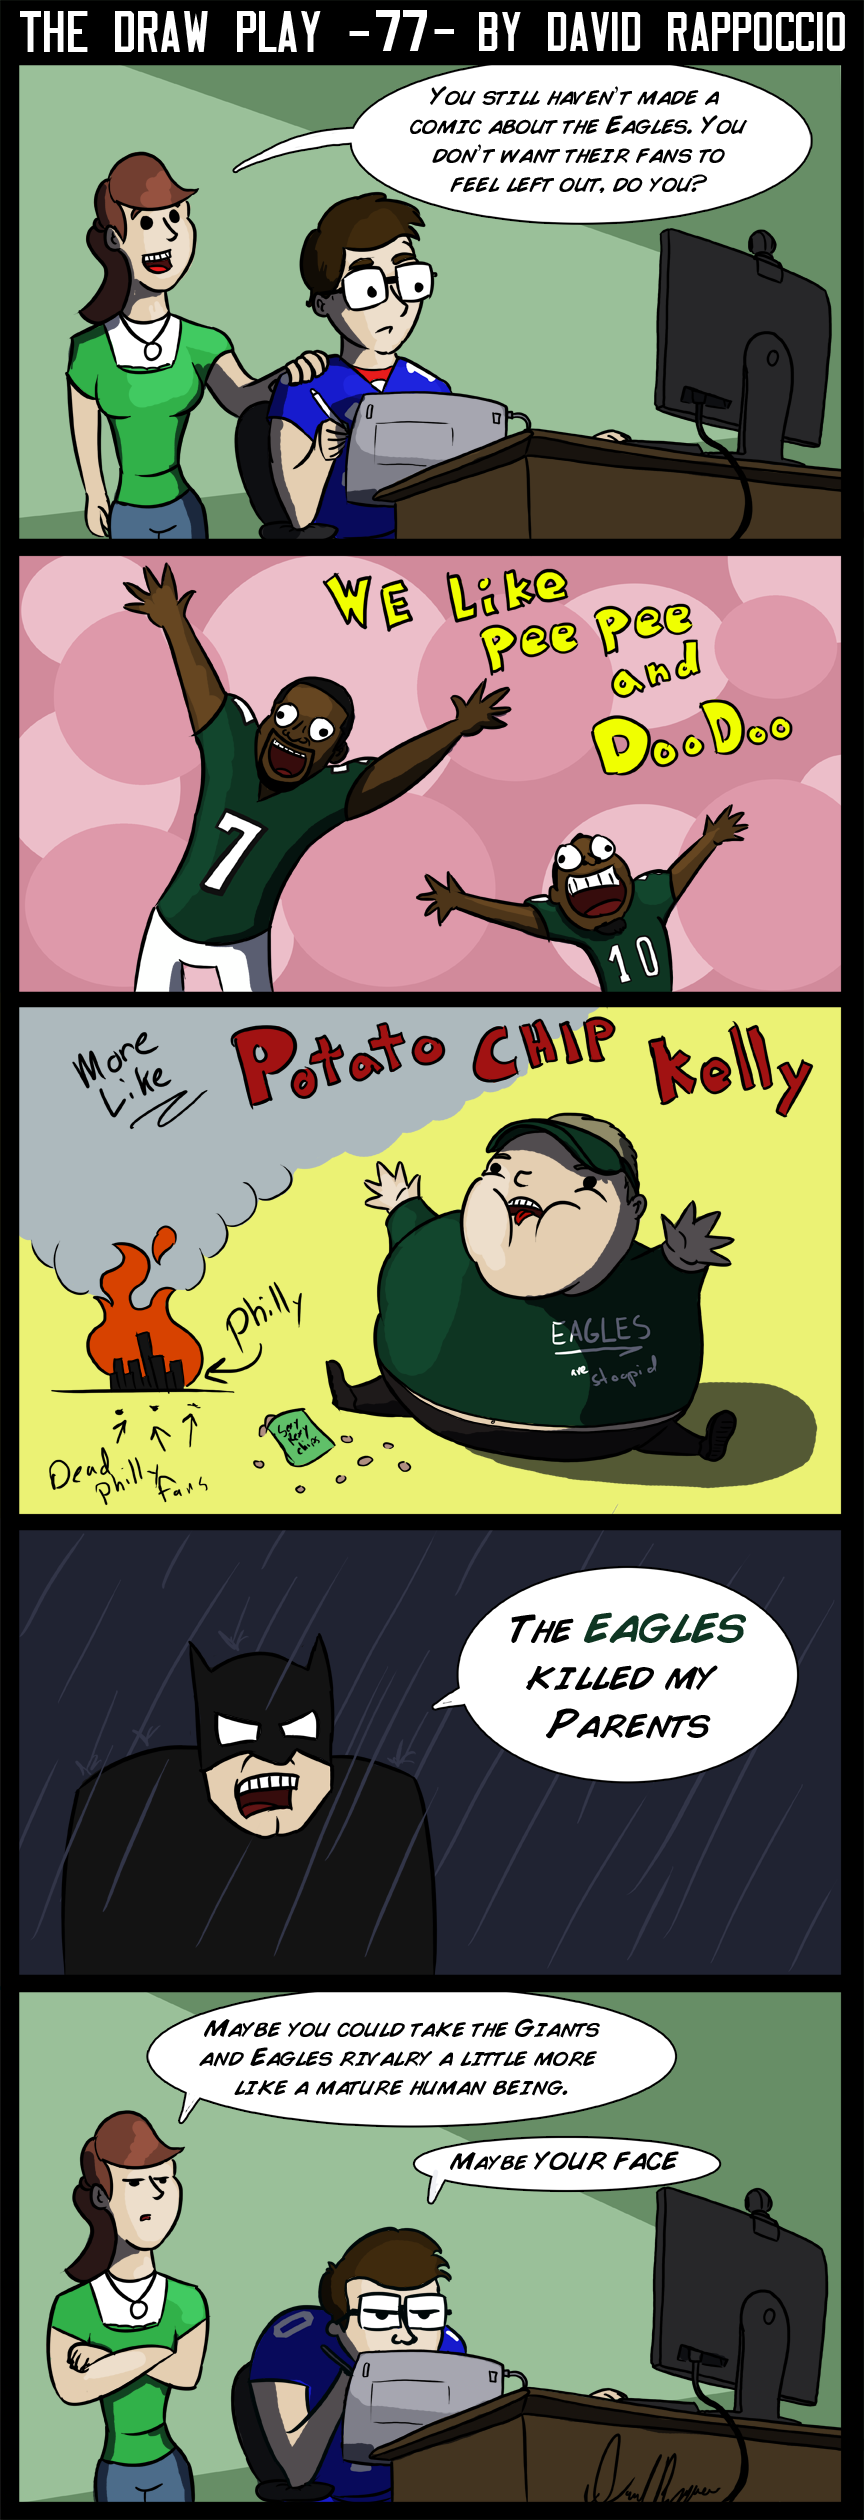 In other completely unbiased opinions, The Draw Play is the best comic ever